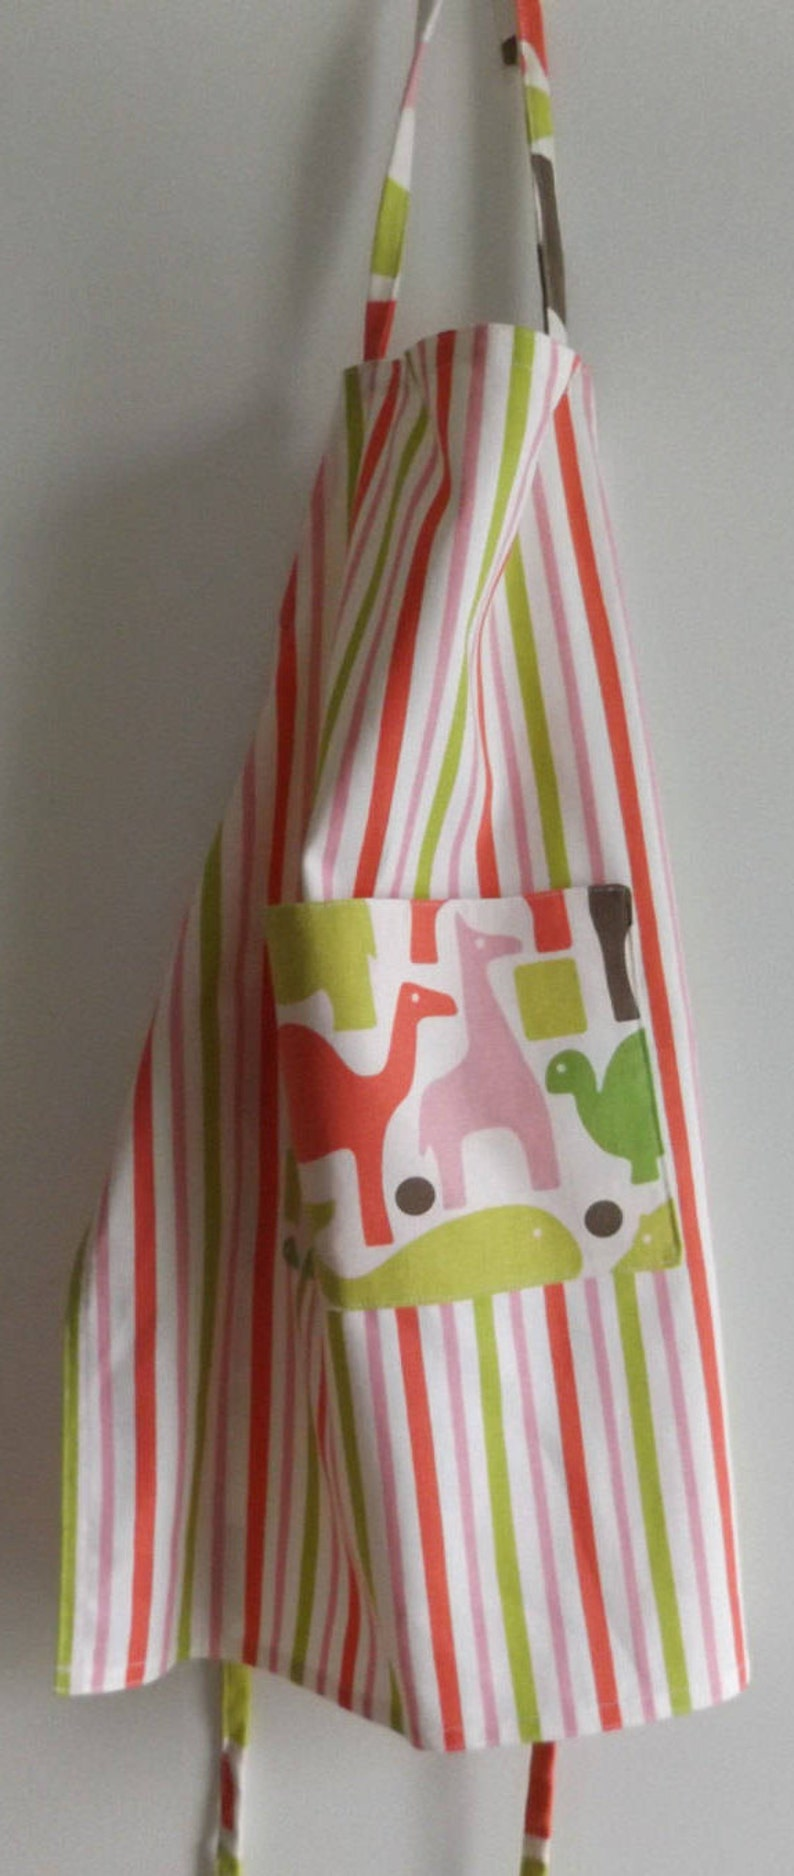 Child/'s Striped Top-Stitched Apron with Lined Pocket of Pinks Yellow /& Green Fabric by Dwell Studio Turtles and Rhinos Christmas Gift